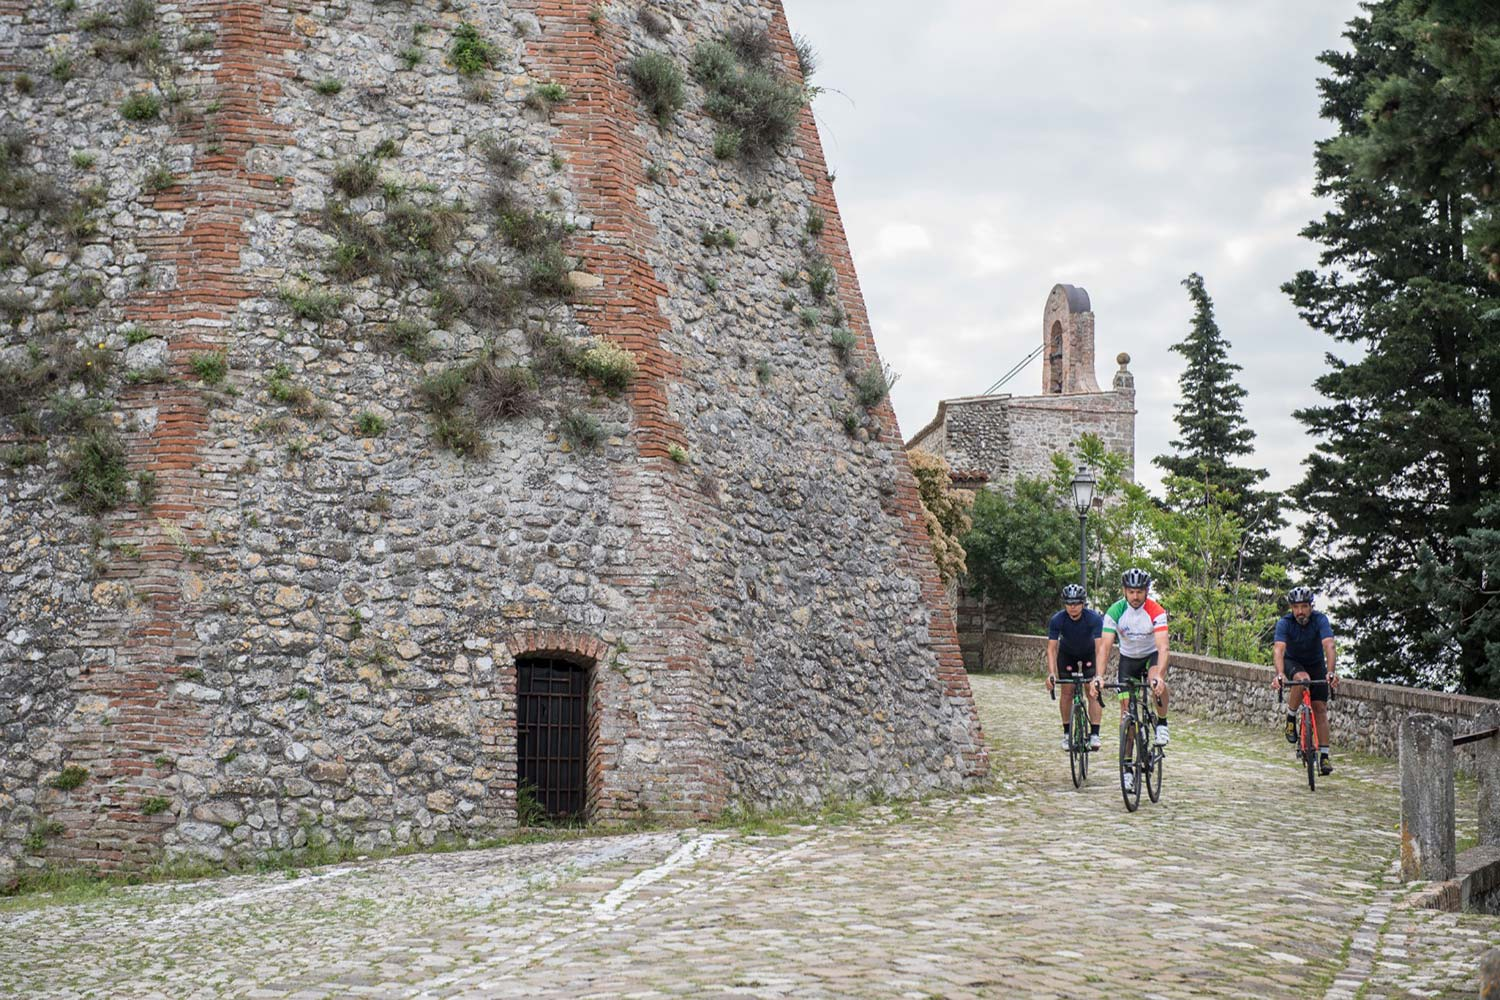 Visit Rimini by mountain bike